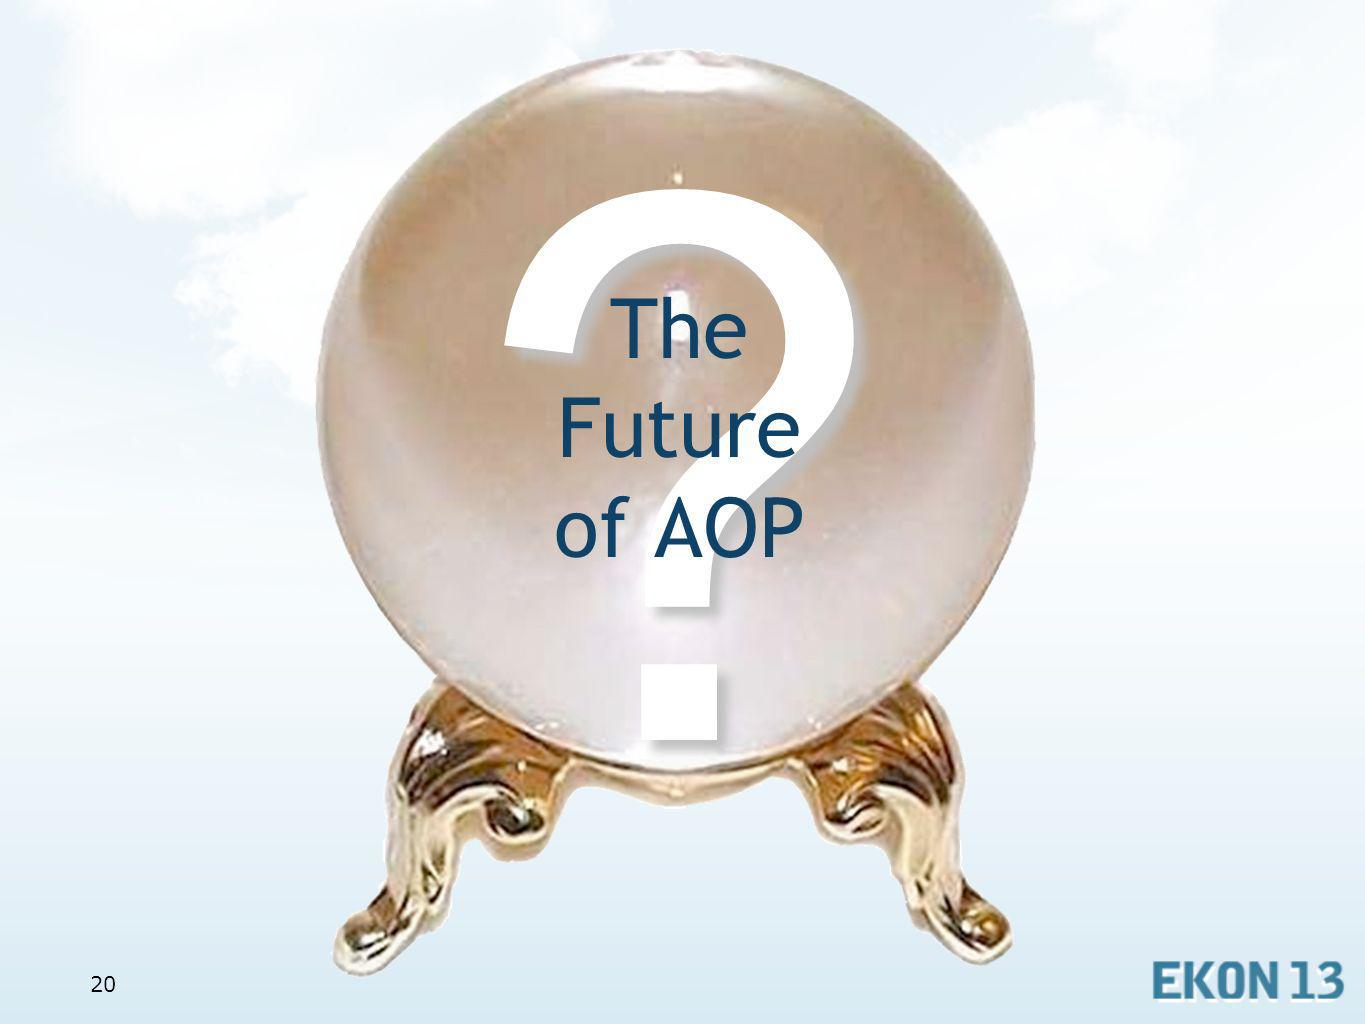 The Future of AOP